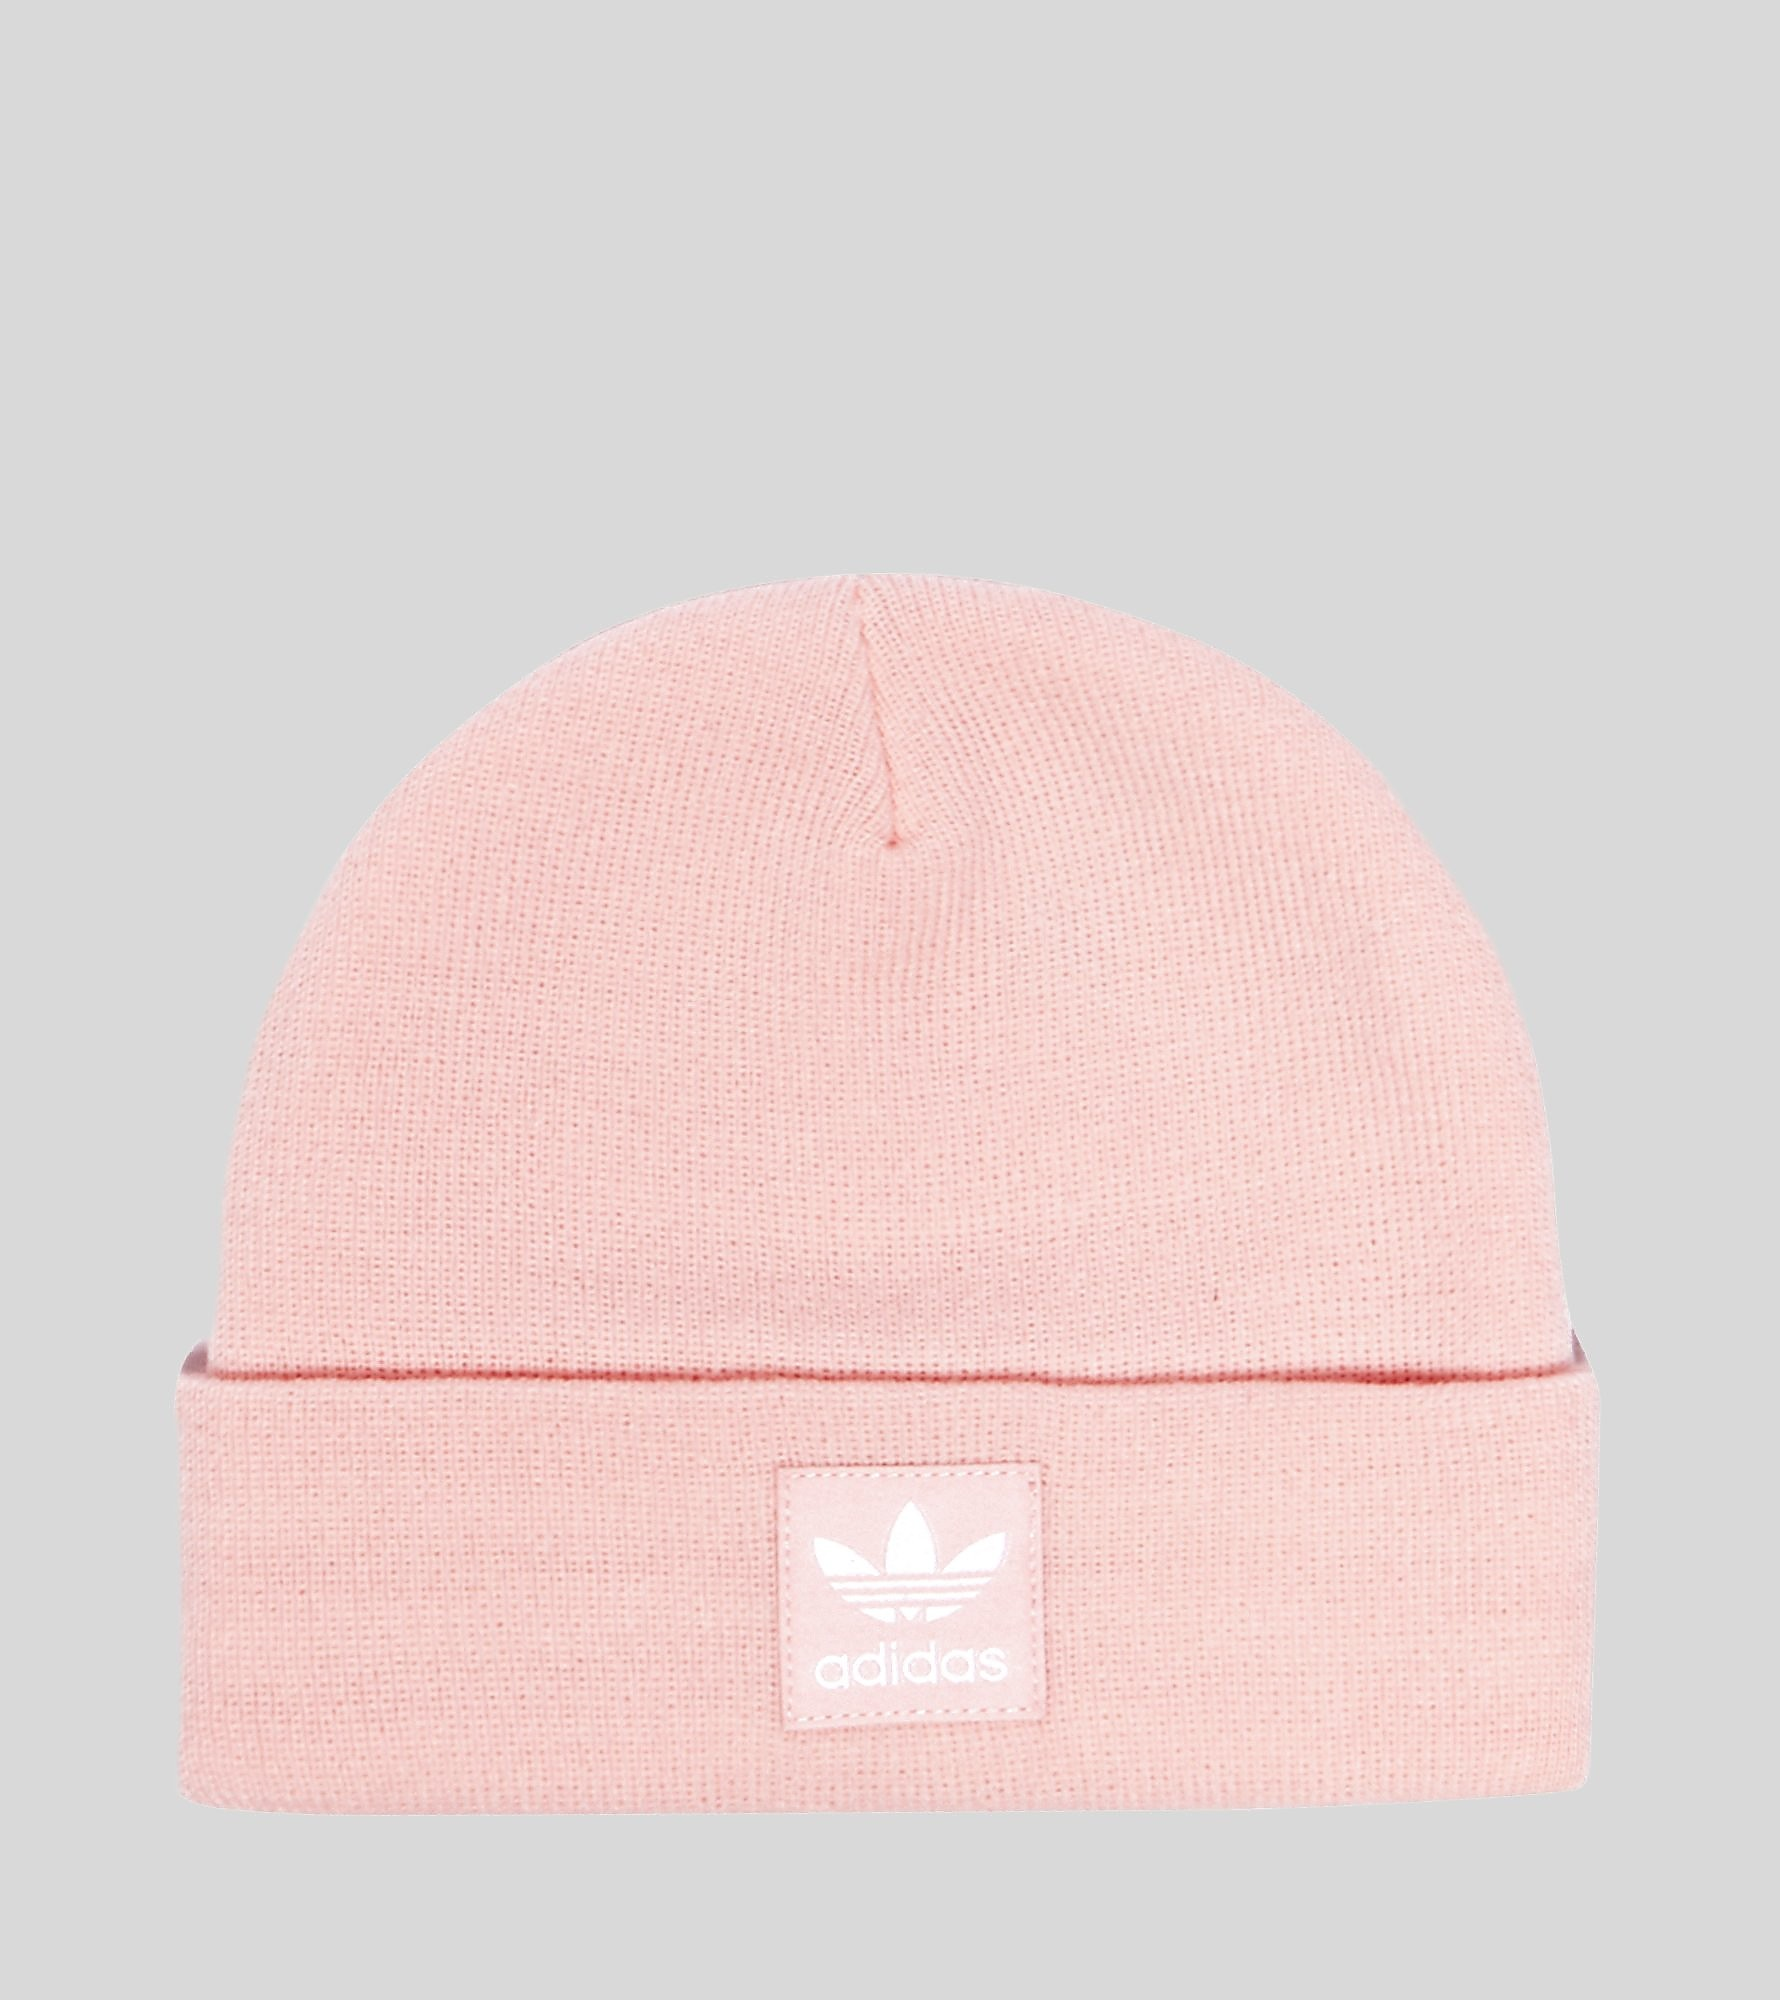 adidas Originals Logo Knitted Beanie